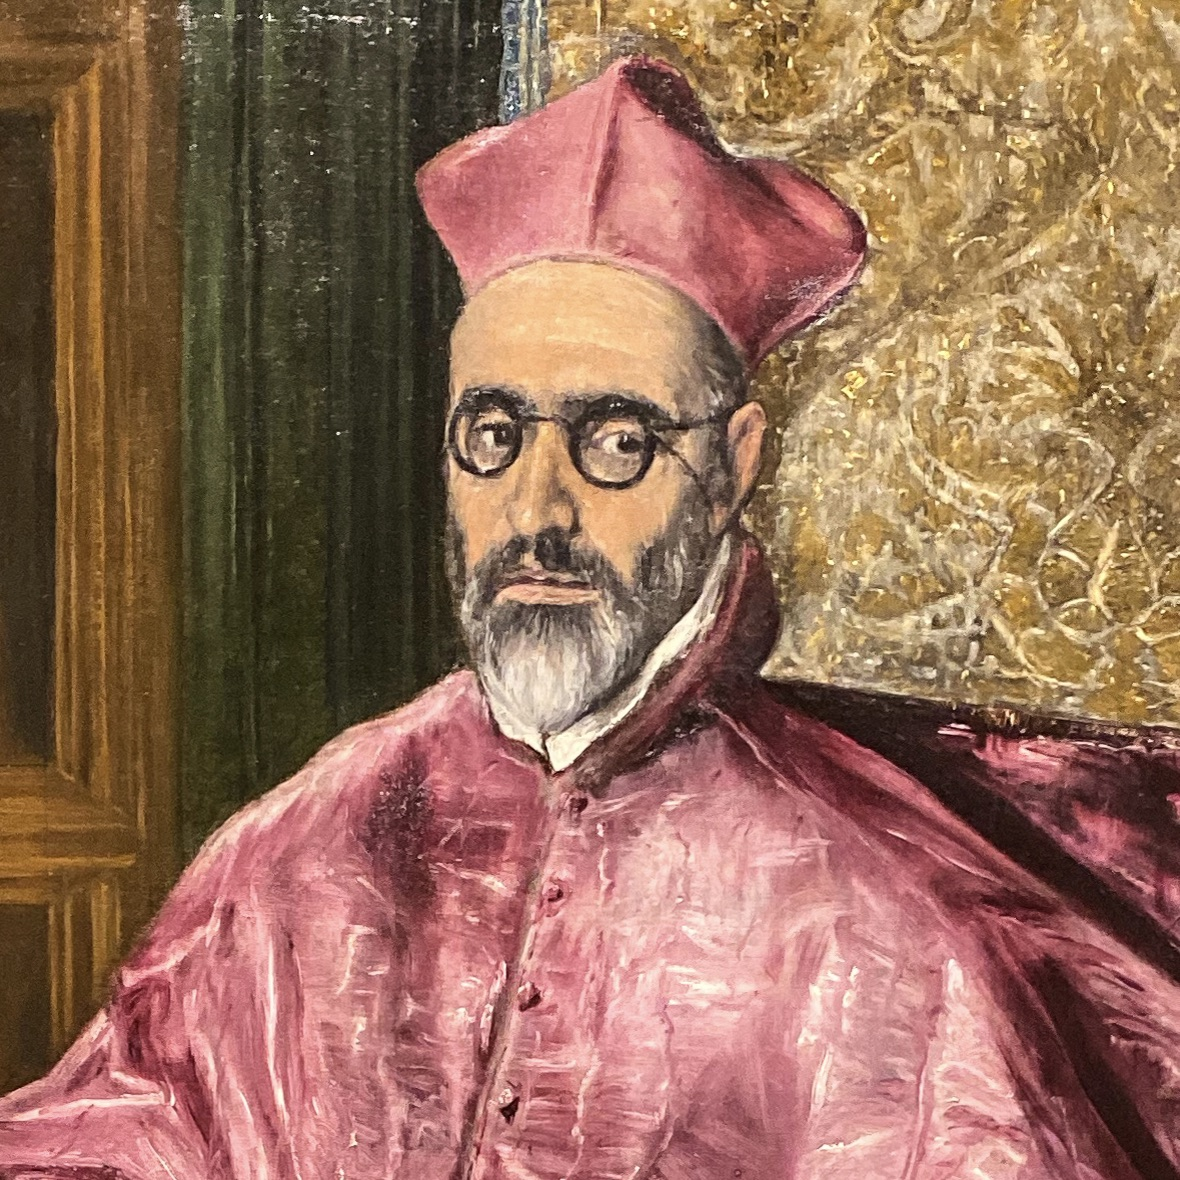 El Greco im Grand Palais in Paris – Großinquisitor